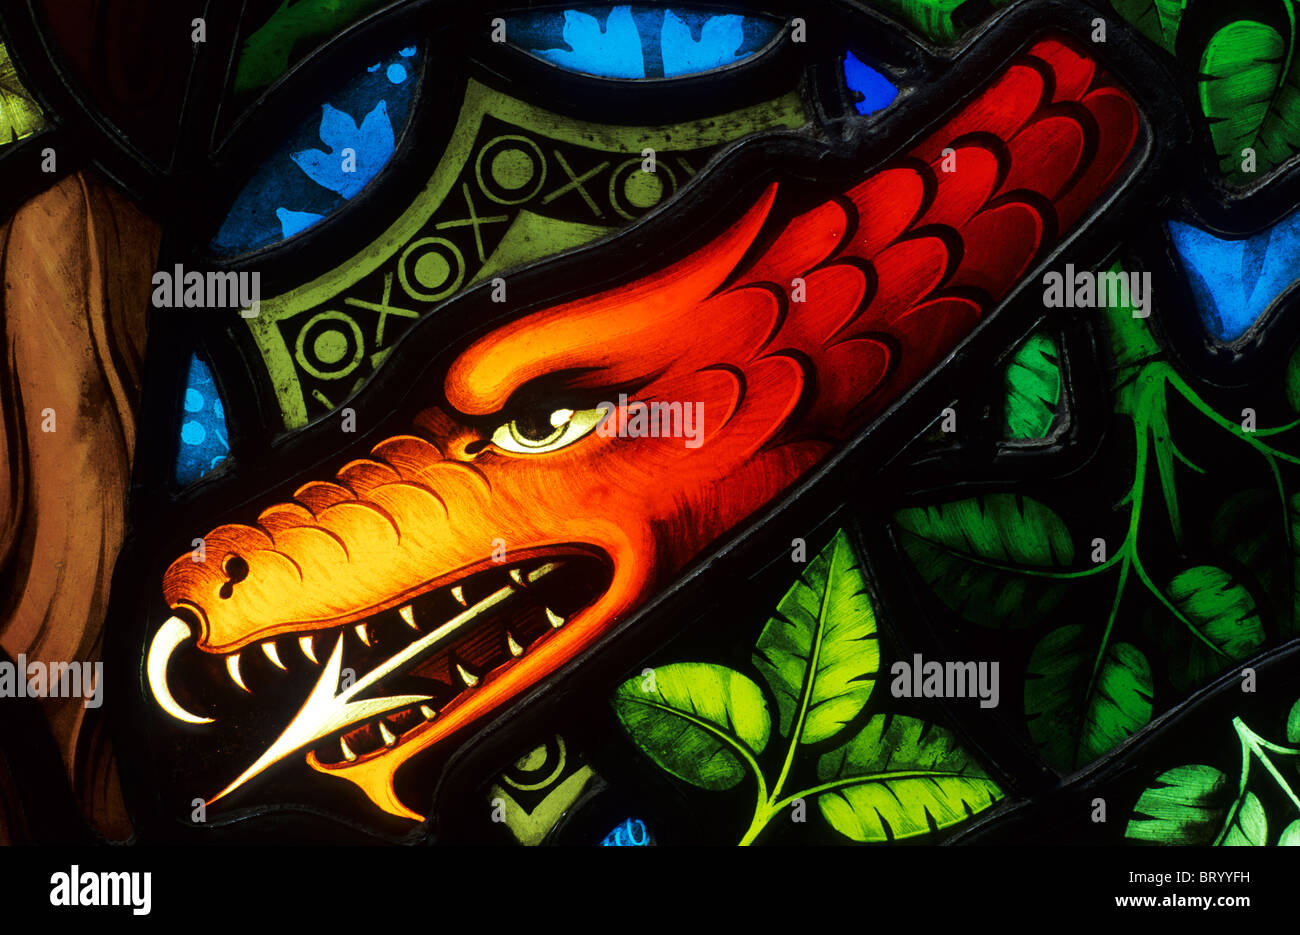 Ely Cathedral, Stained Glass Museum, Detail from Temptation of Eve, 1858, Pugin, serpent, forked tongue snake serpents - Stock Image